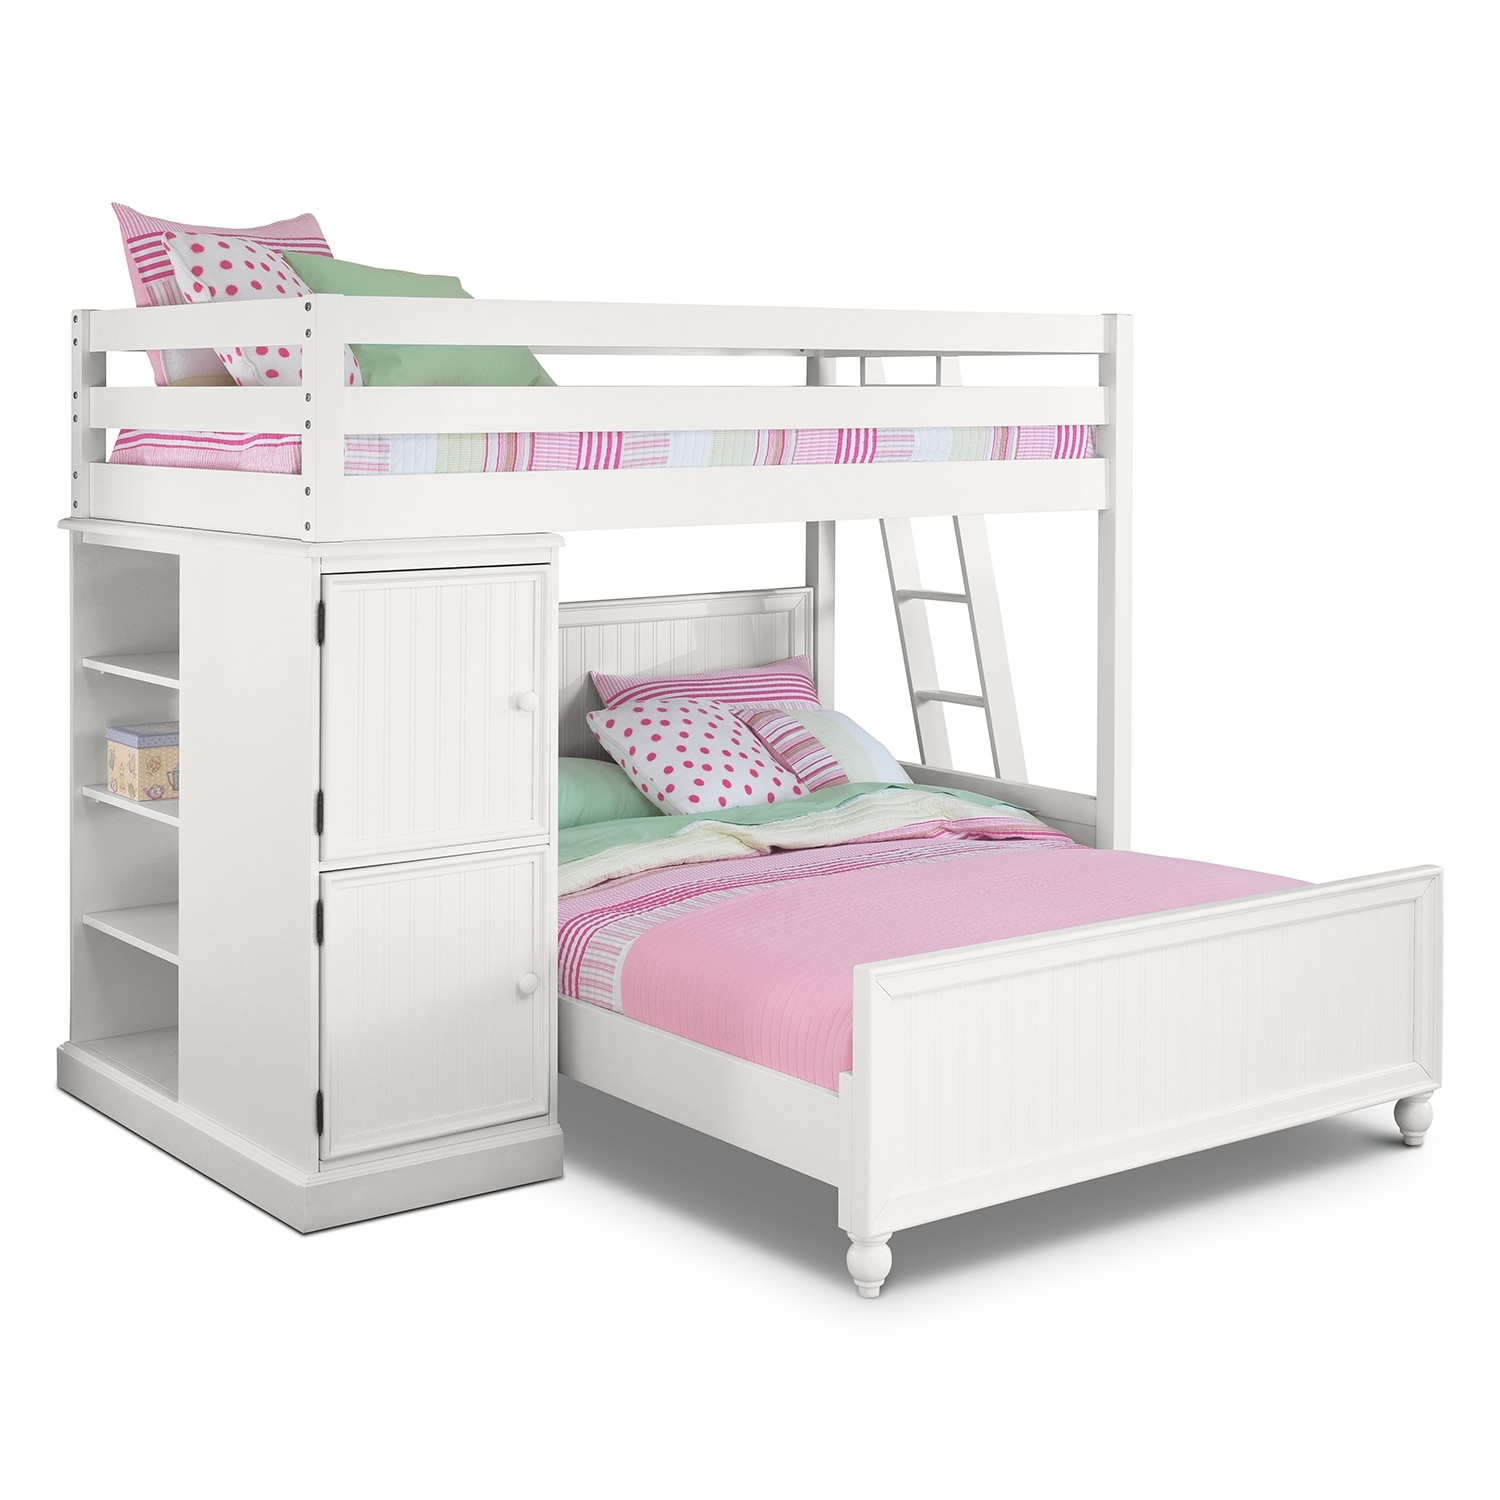 Colorworks white ii kids furniture loft bed with full bed for Loft furniture